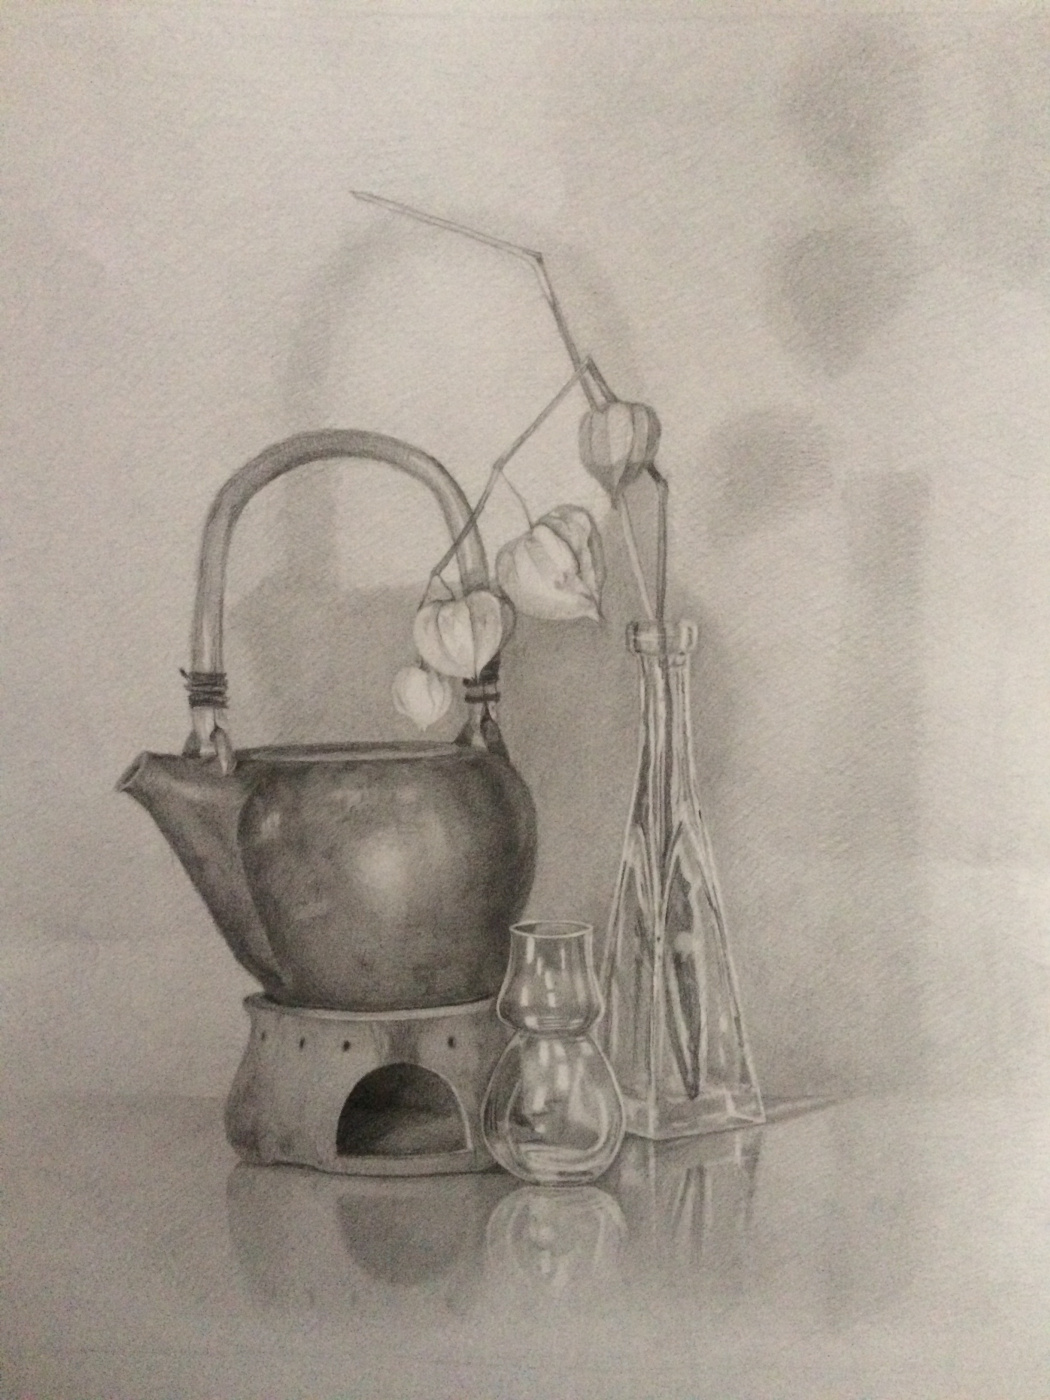 Diana Schegiriova. Still Life with Ceramic Teapot